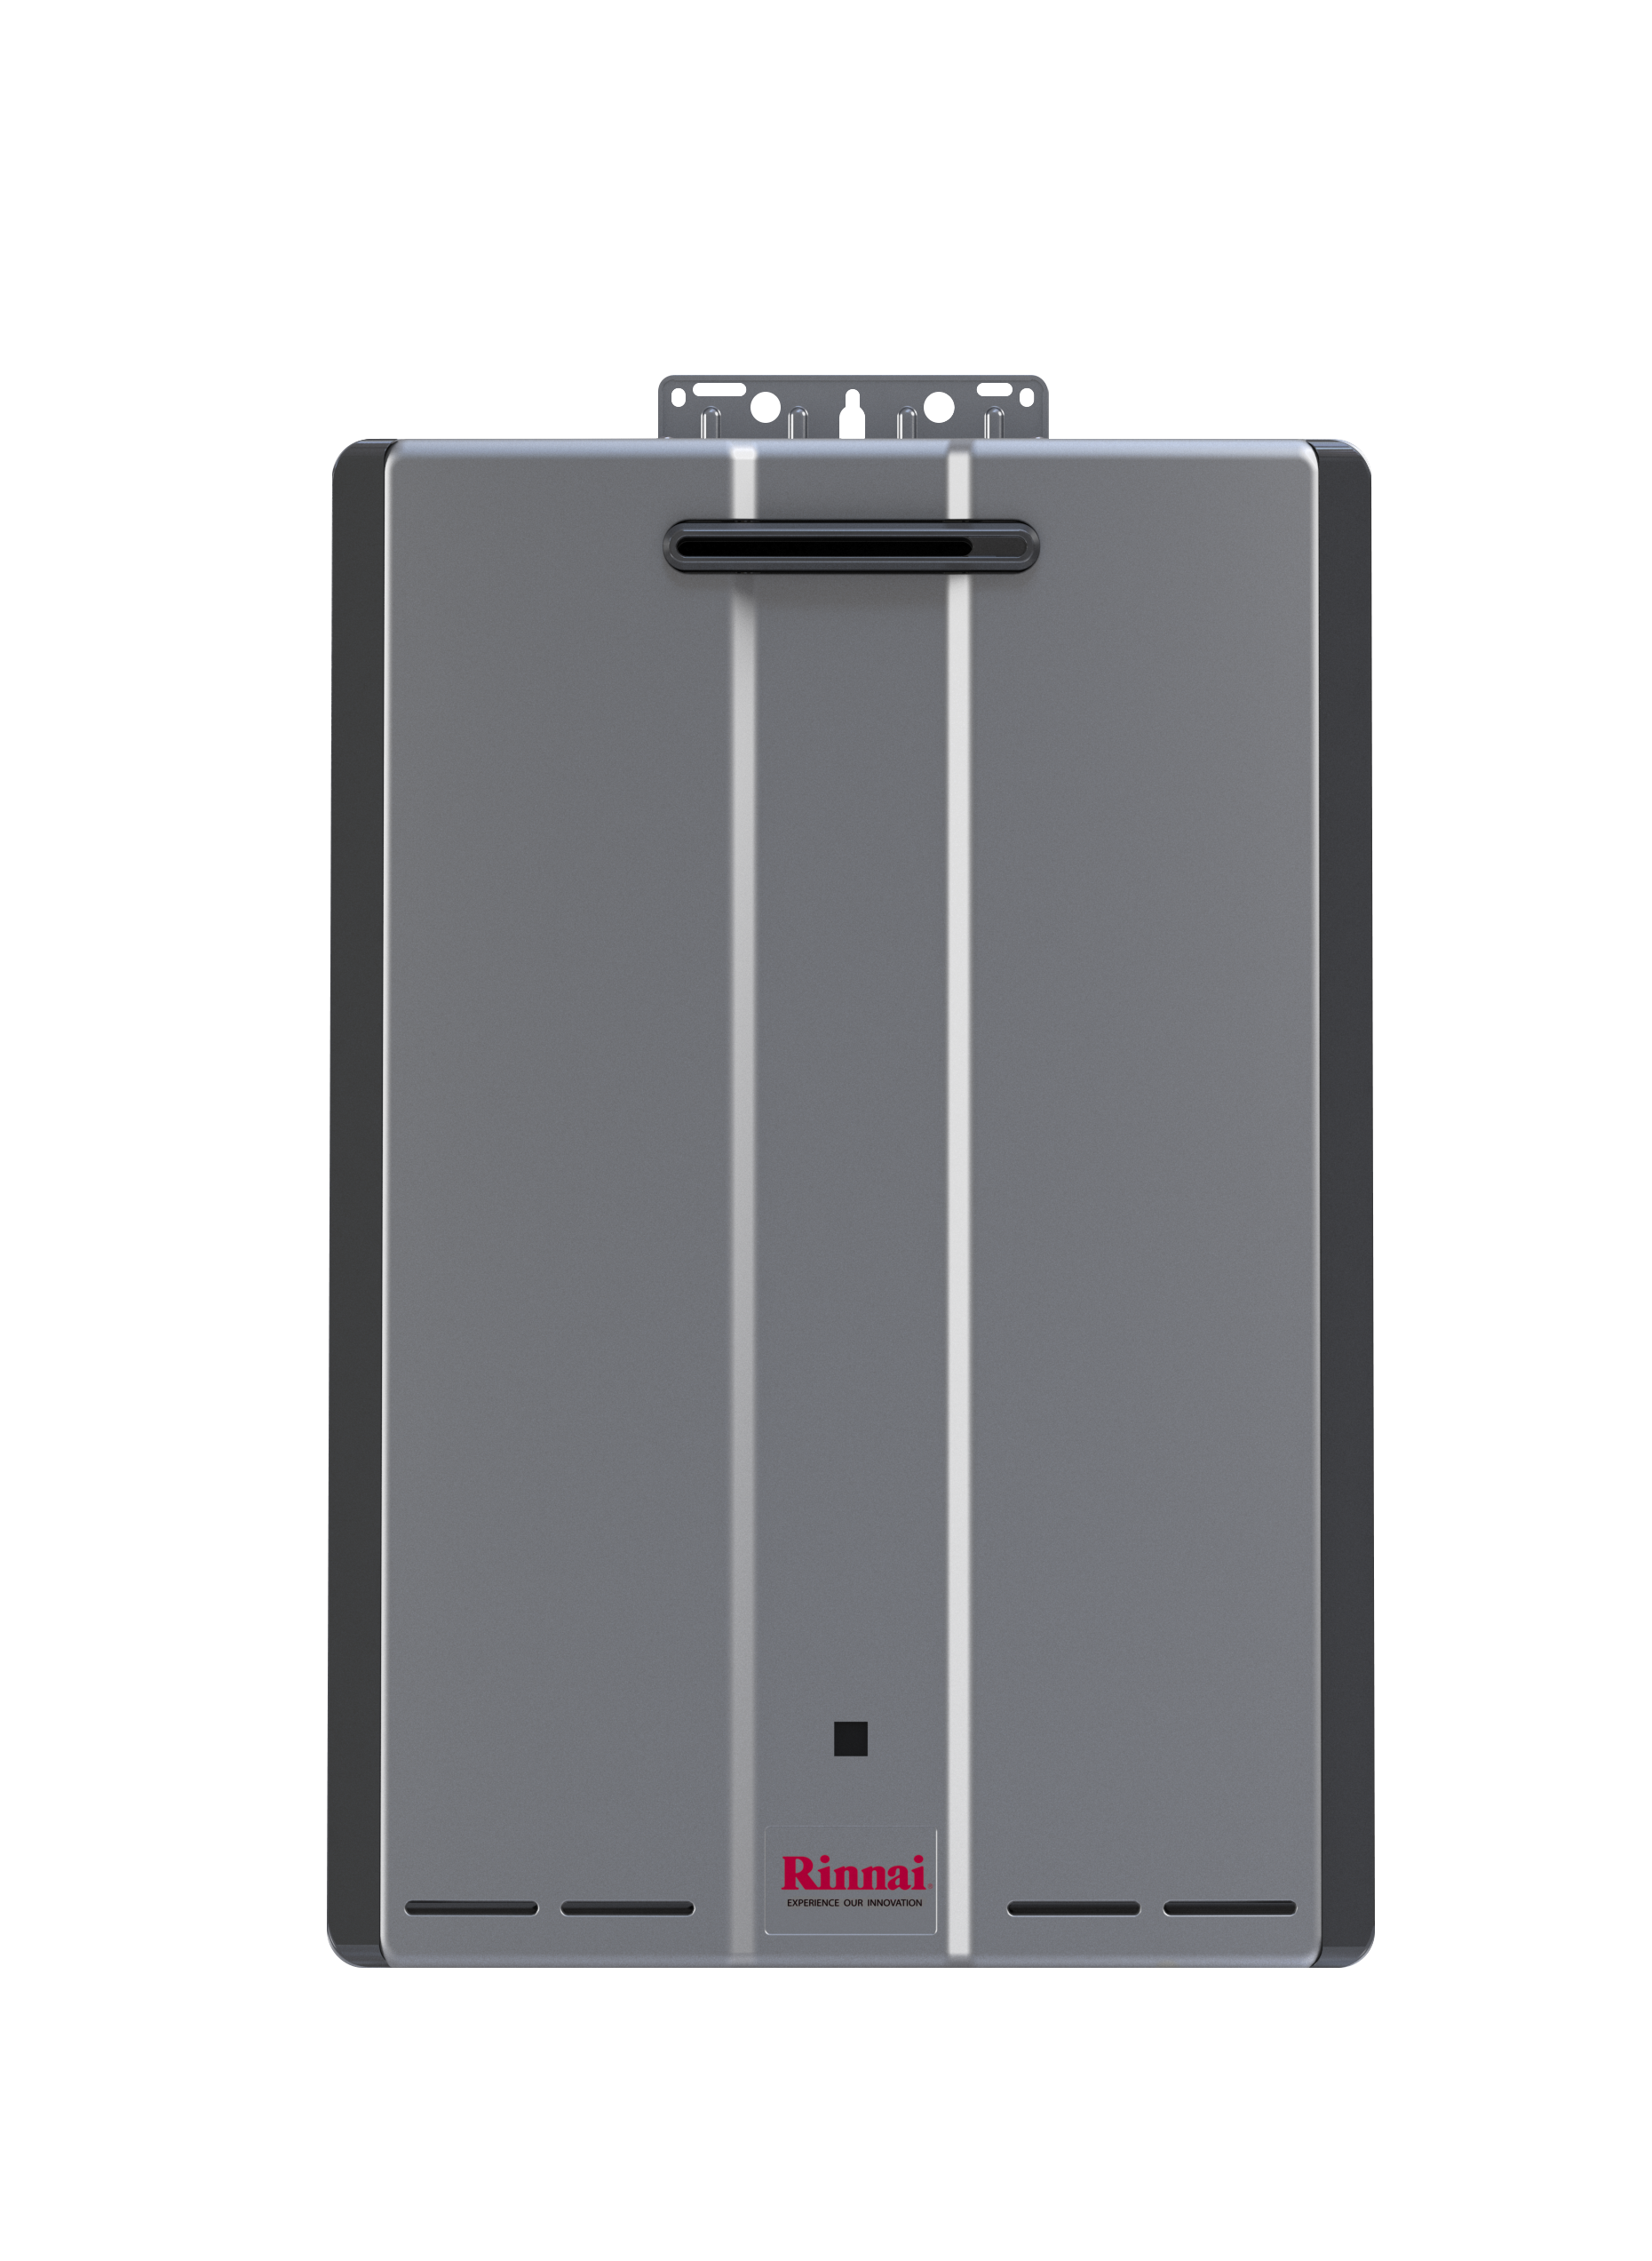 rinnai compact 2 gas fire manual